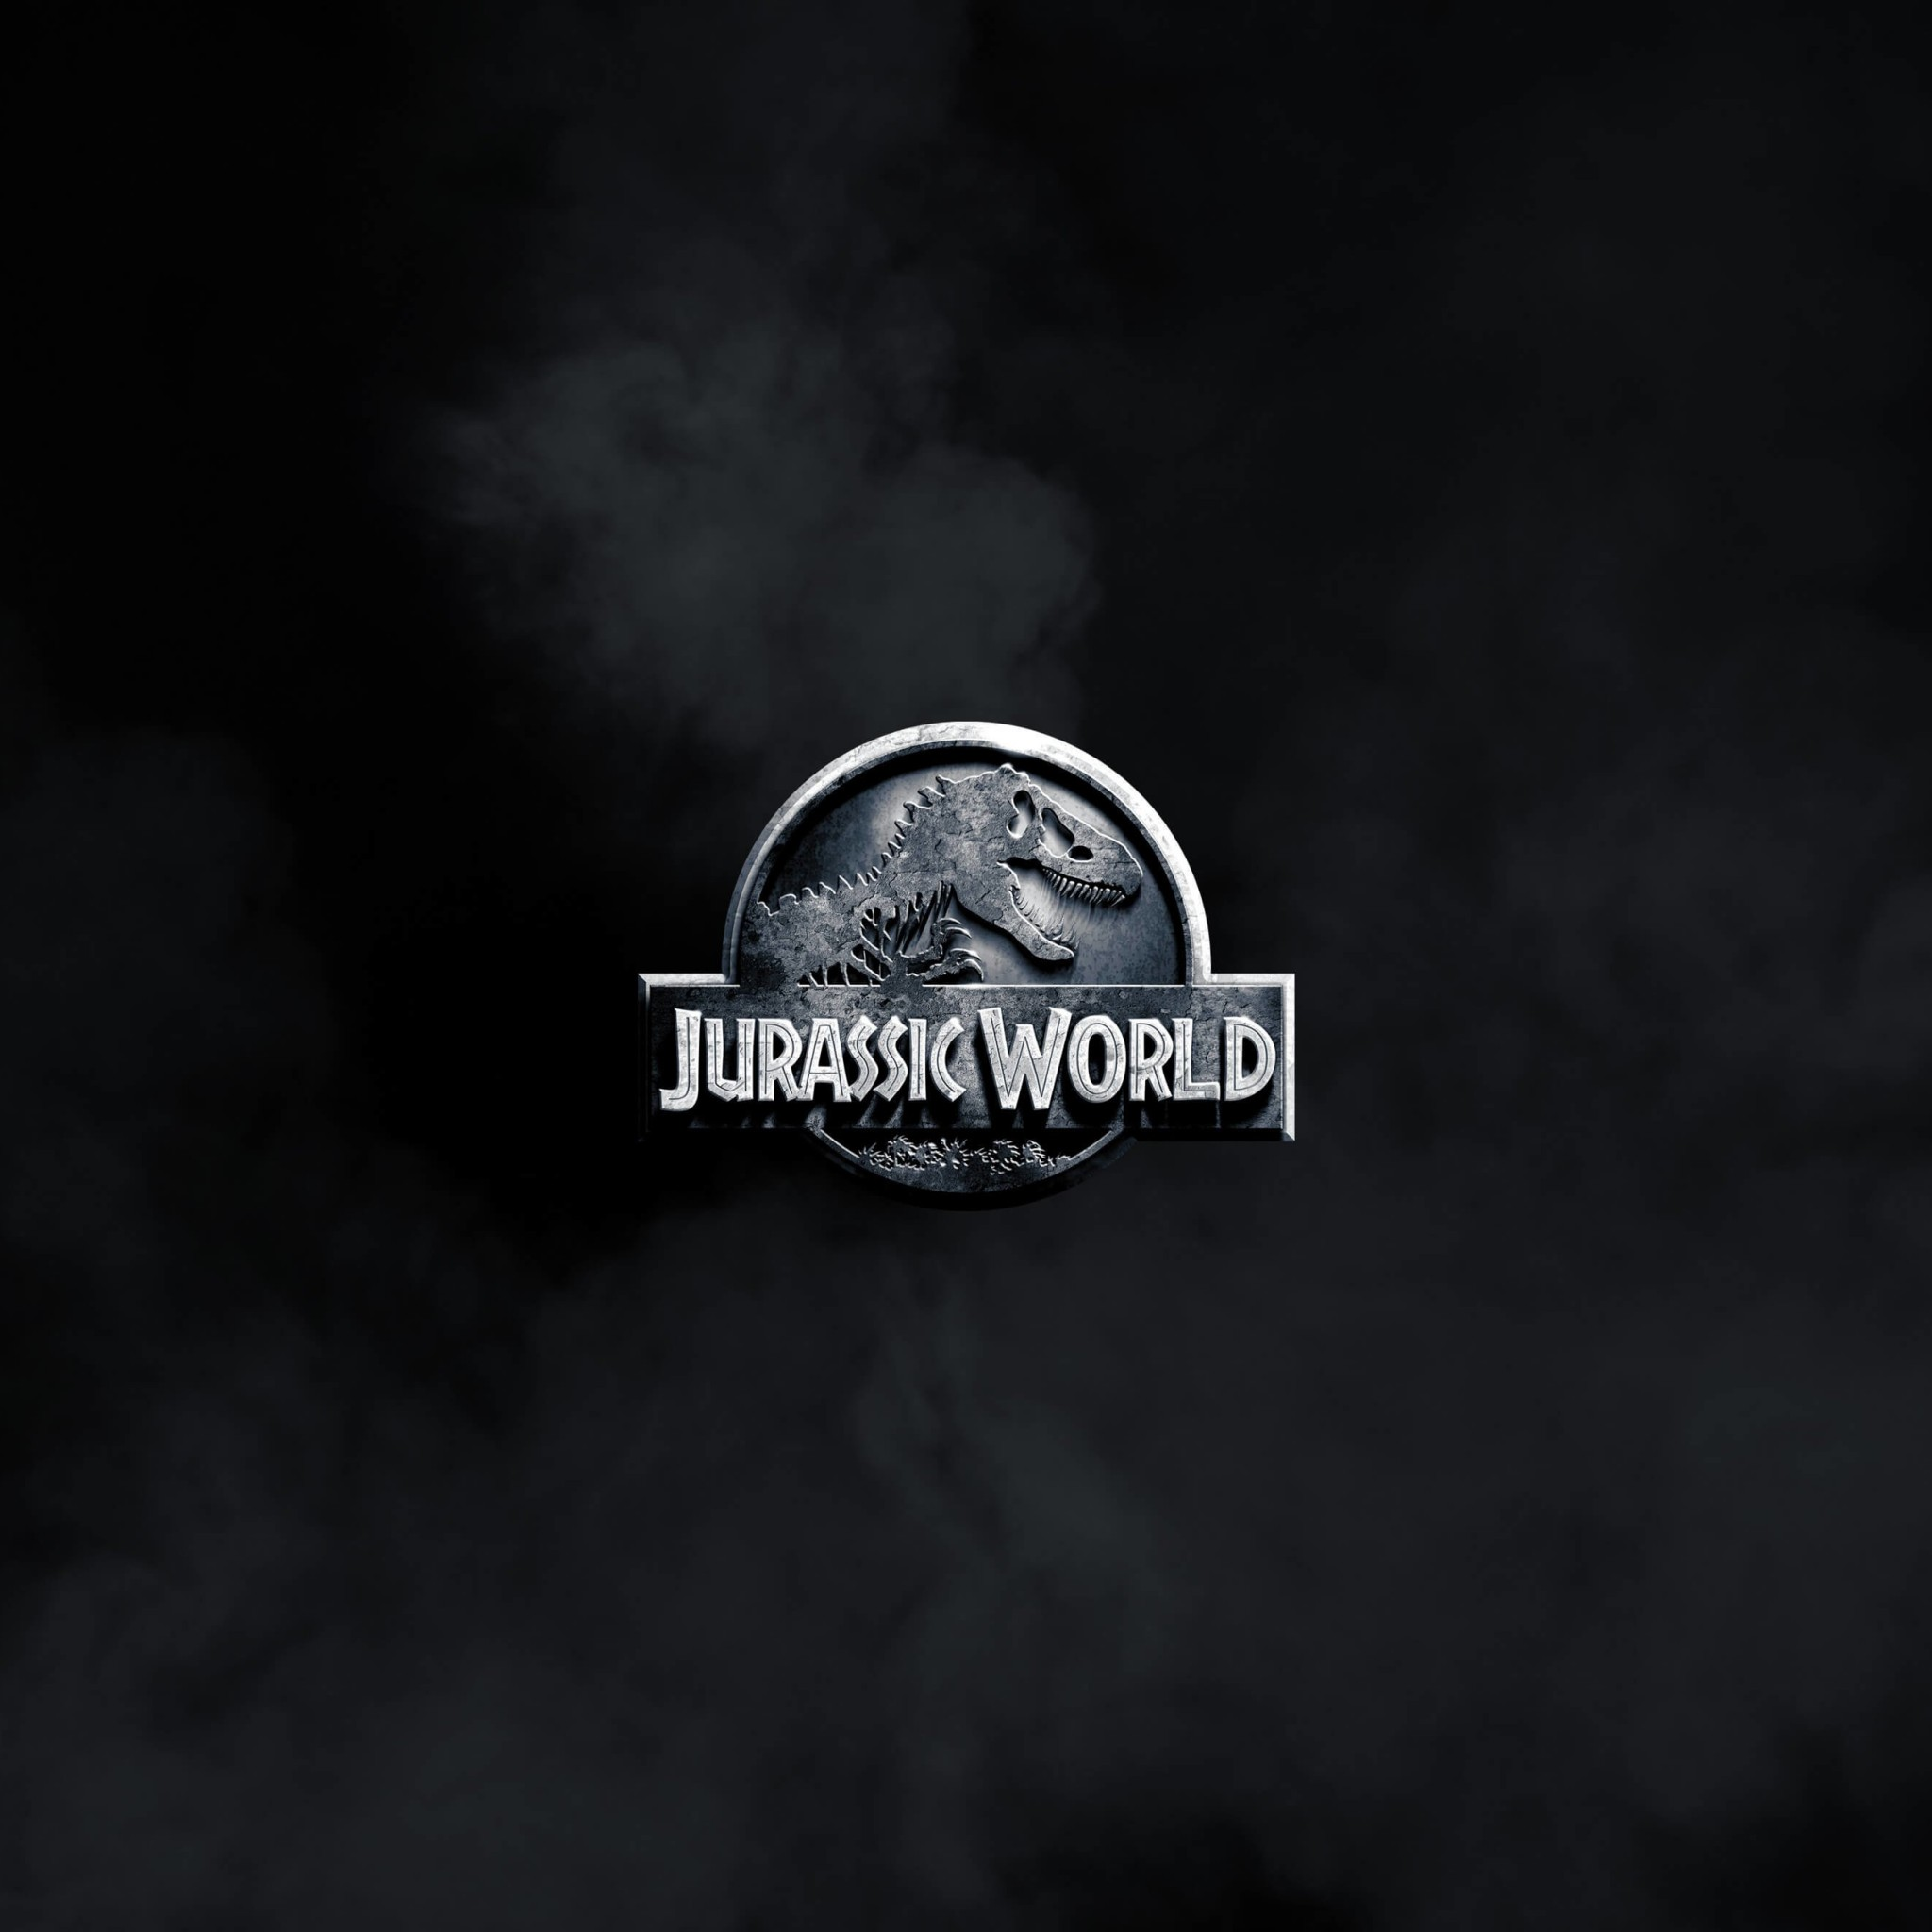 Jurassic World Wallpaper for Google Nexus 9